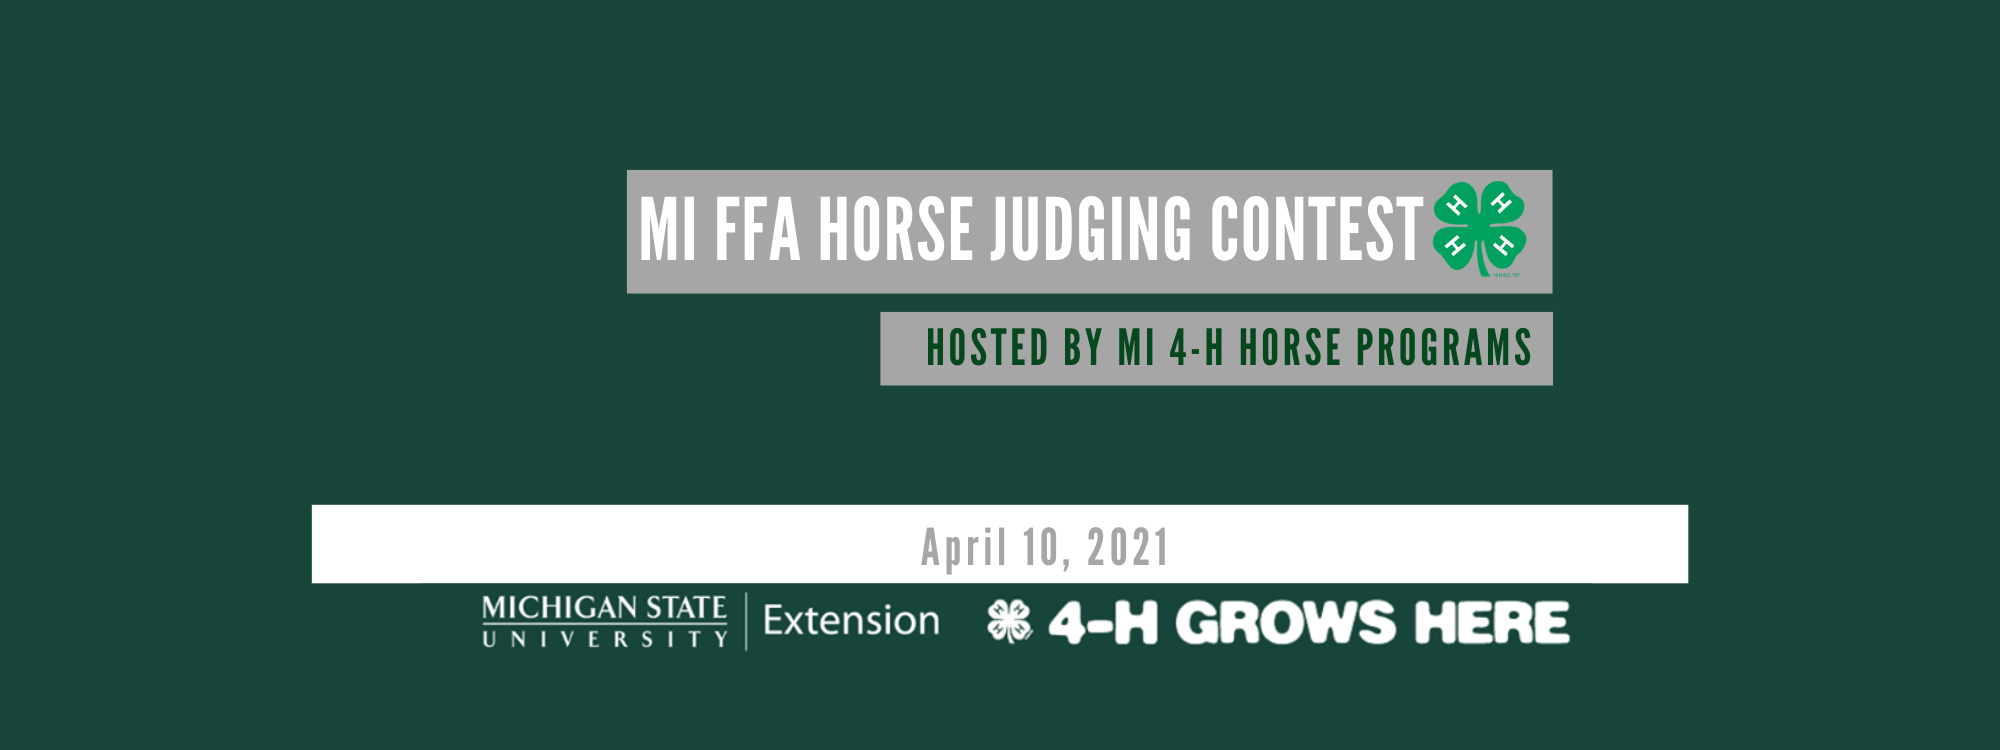 Michigan FFA Horse Judging Contest, hosted by Michigan 4-H Horse Programs logo.